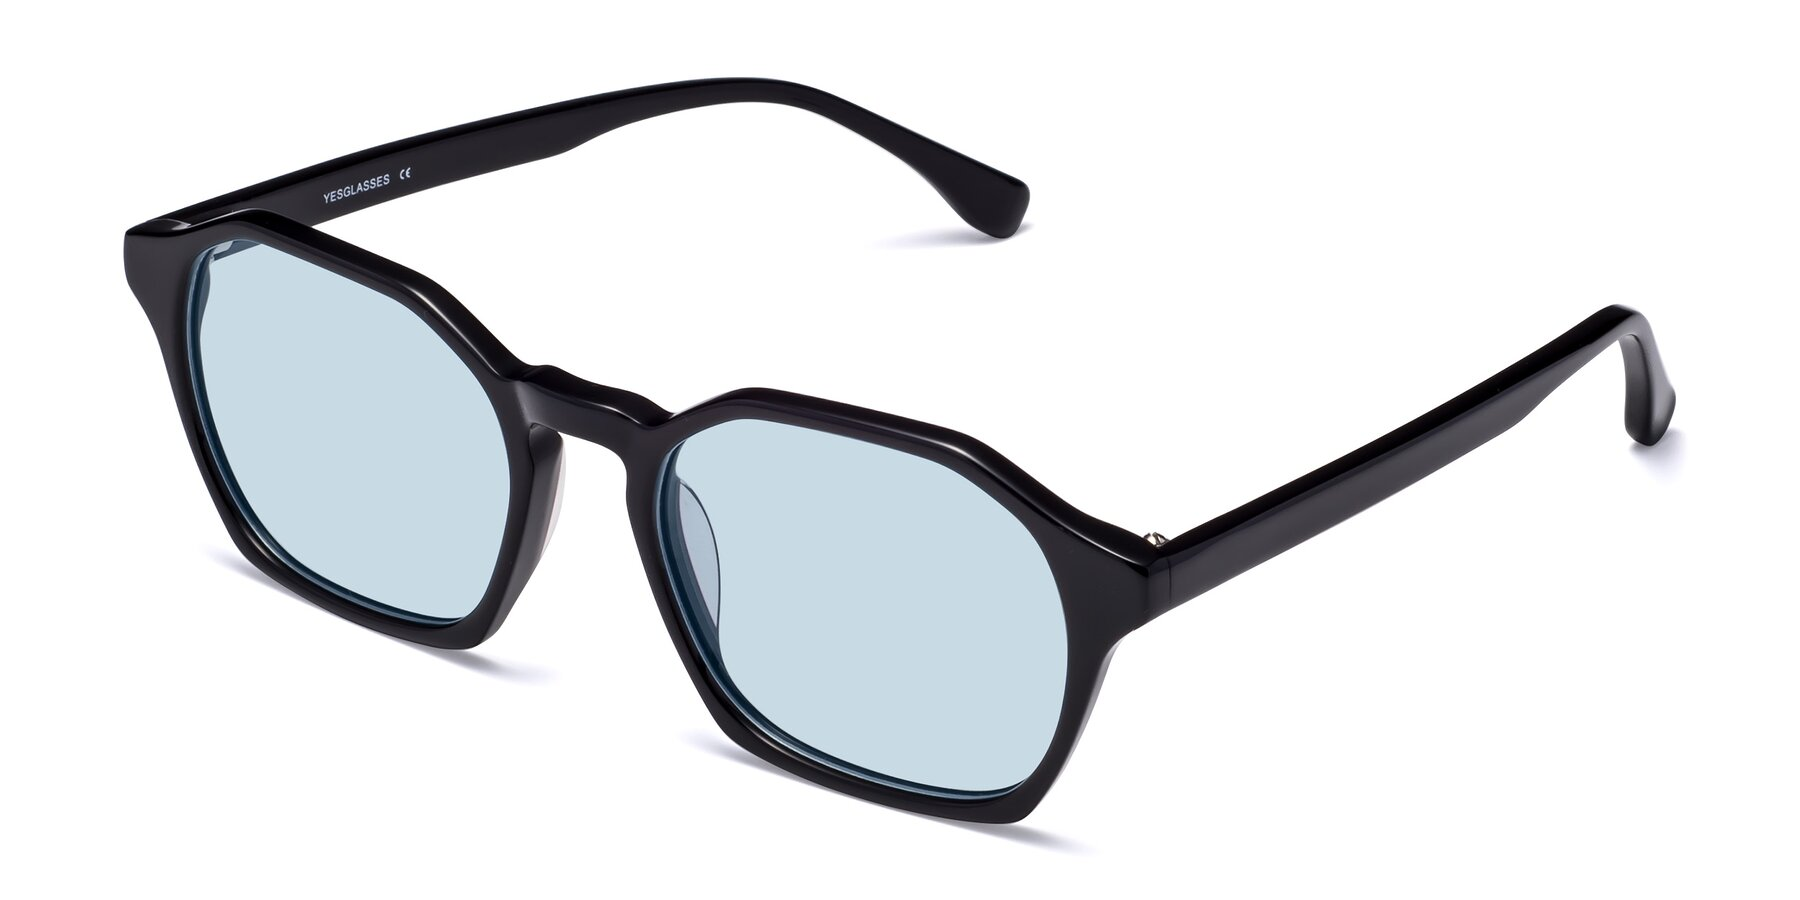 Angle of Stoltz in Black with Light Blue Tinted Lenses